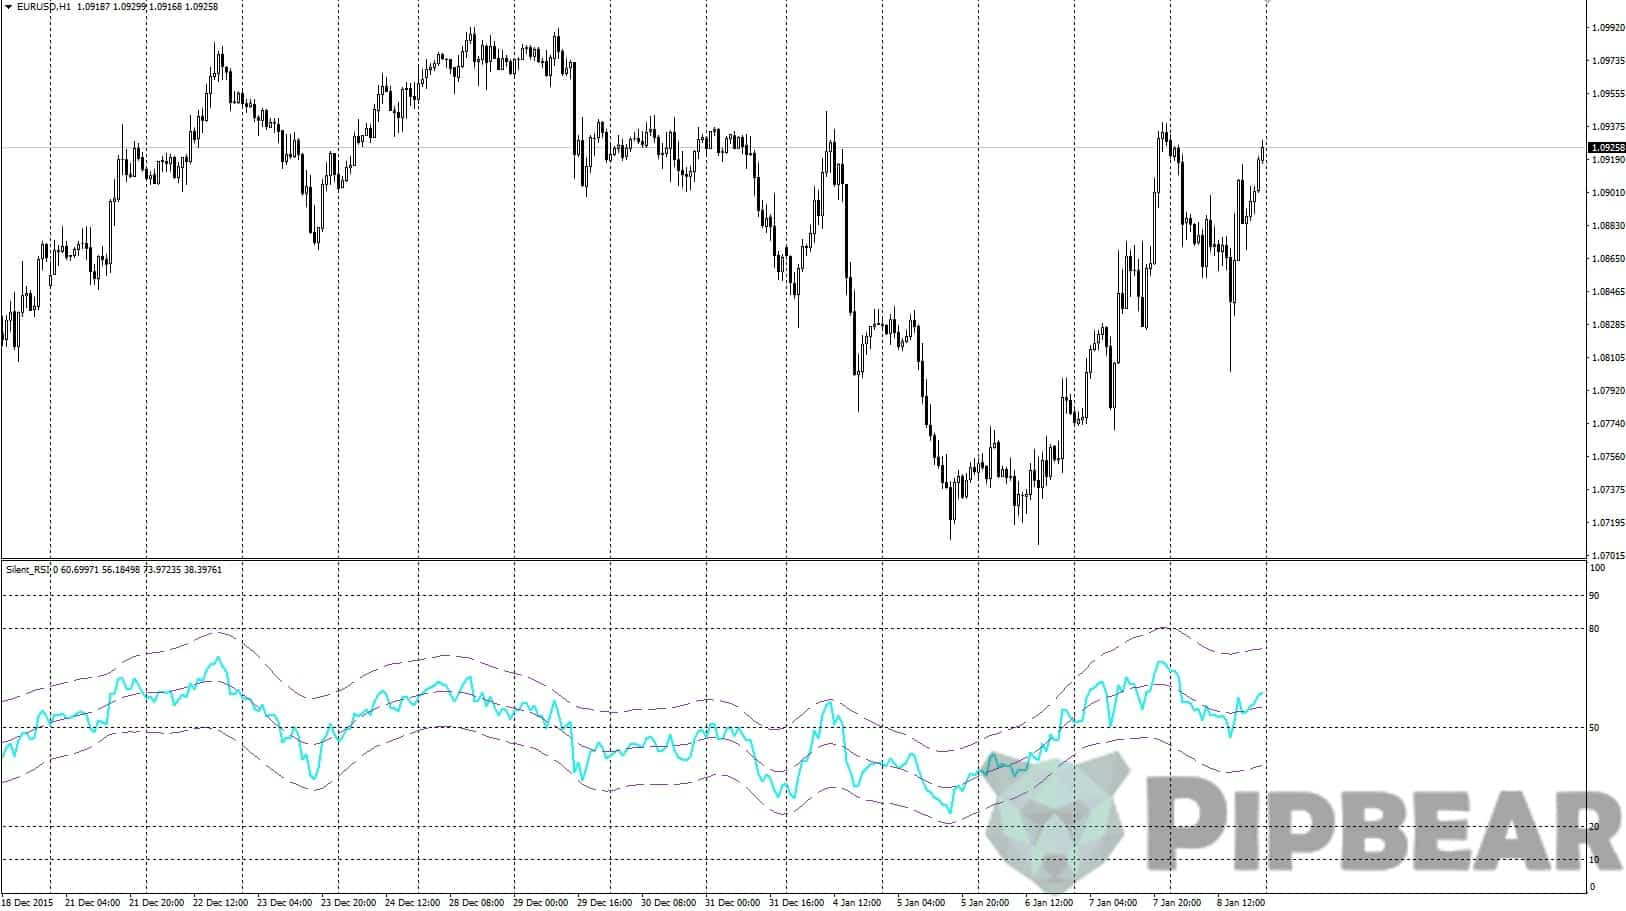 the RSI indicator